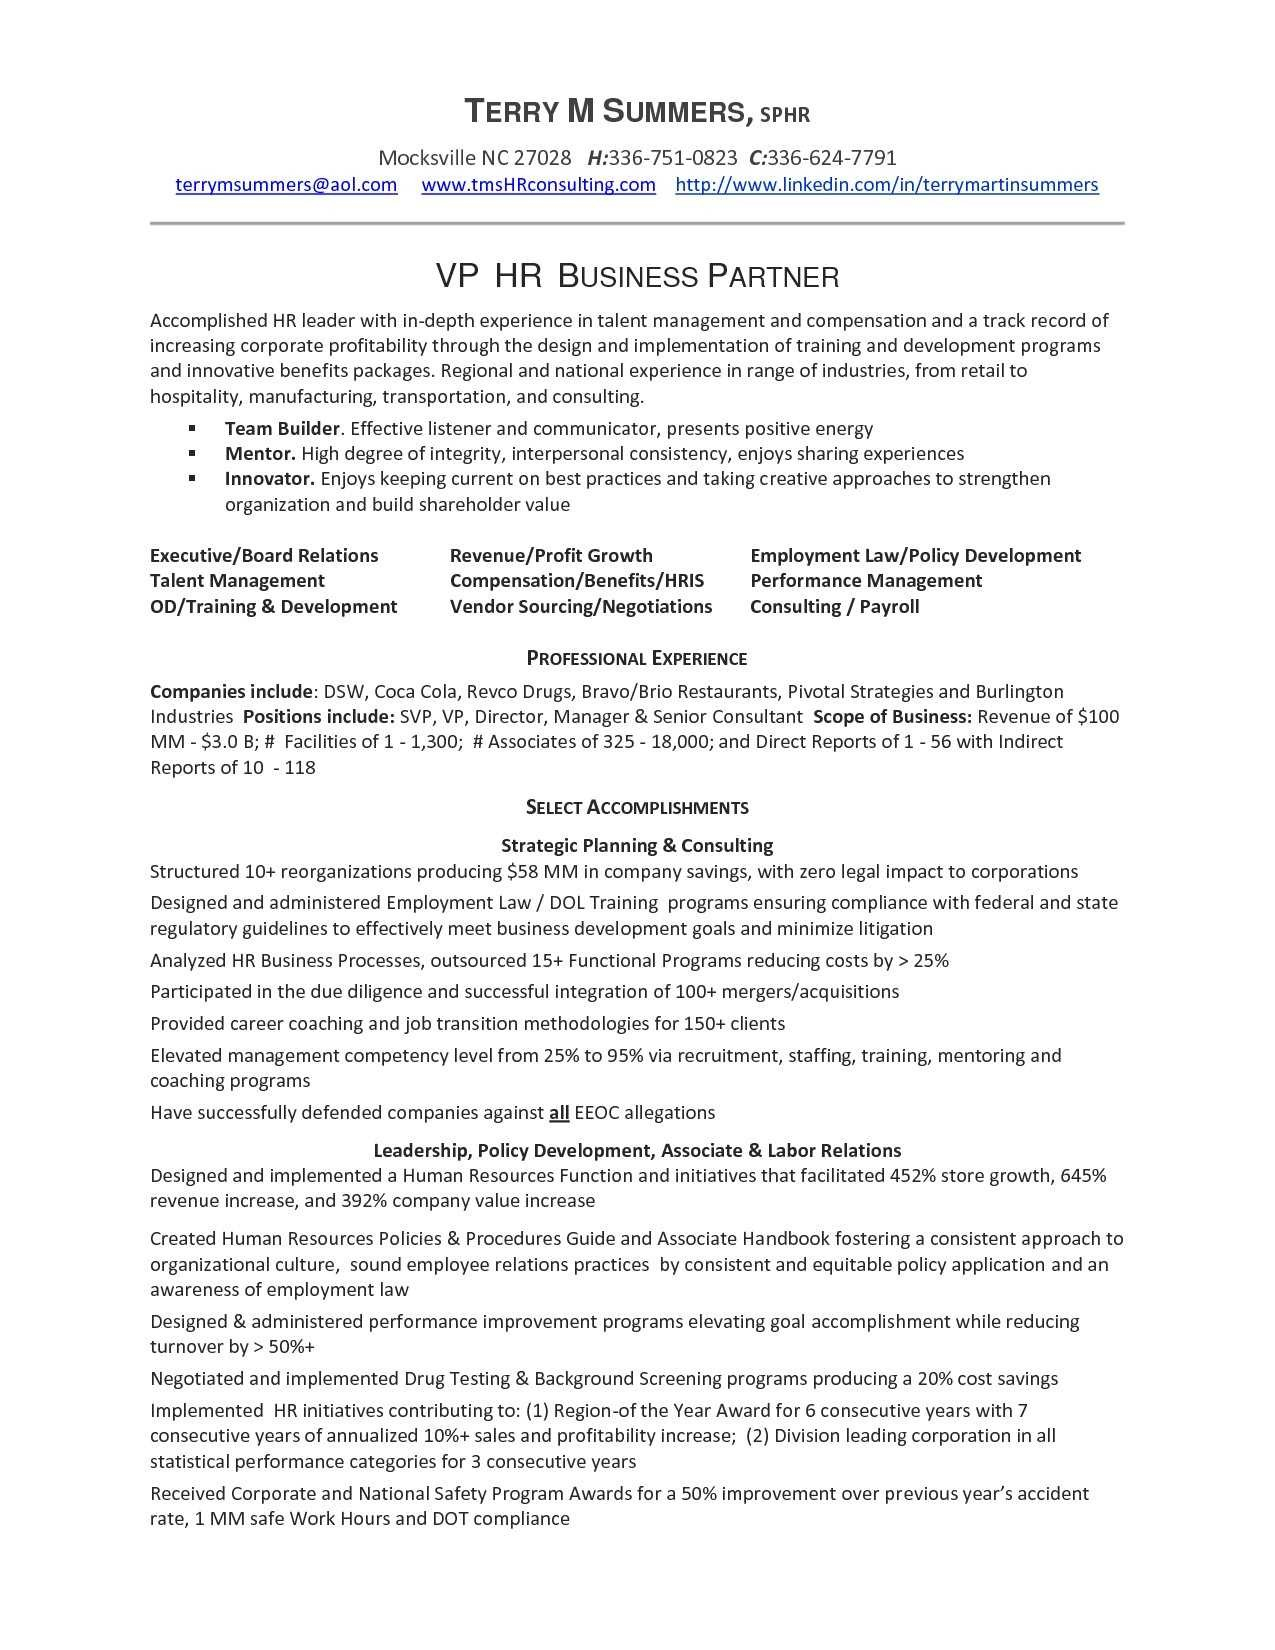 Commercial Letter Of Intent Template - Business Letter Intent Template Best Sample Business